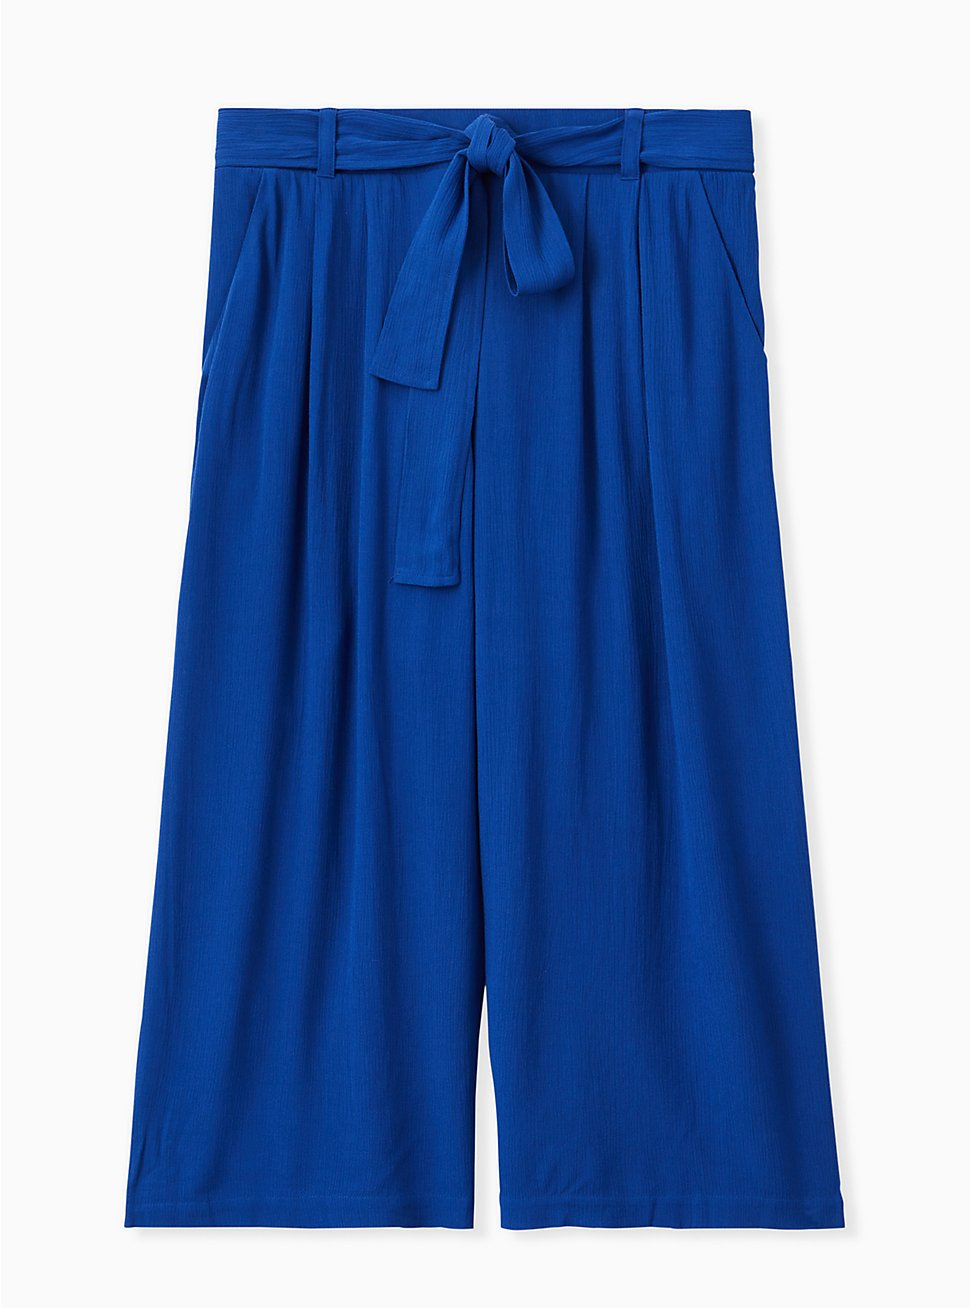 Sapphire Blue Crinkled Gauze Self tie Culotte Pant , SODALITE BLUE, hi-res